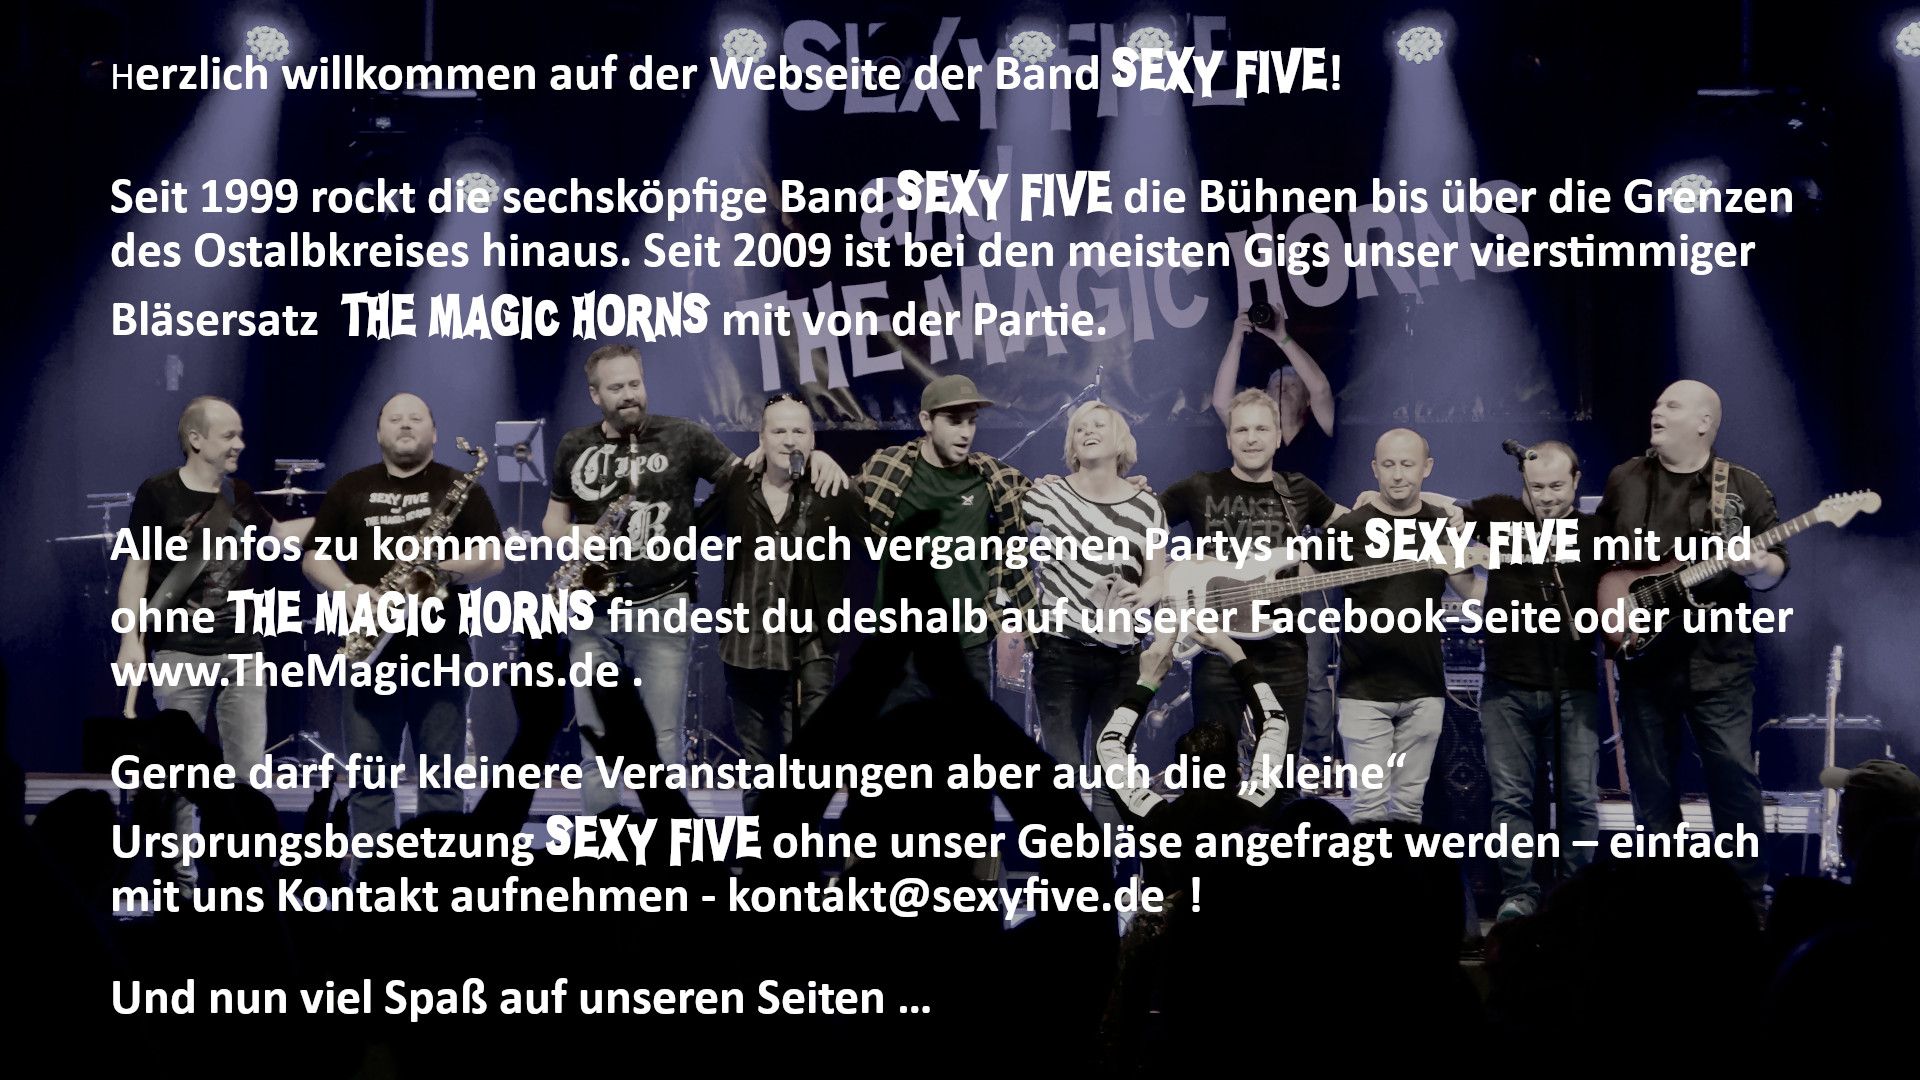 SEXY FIVE and THE MAGIC HORNS